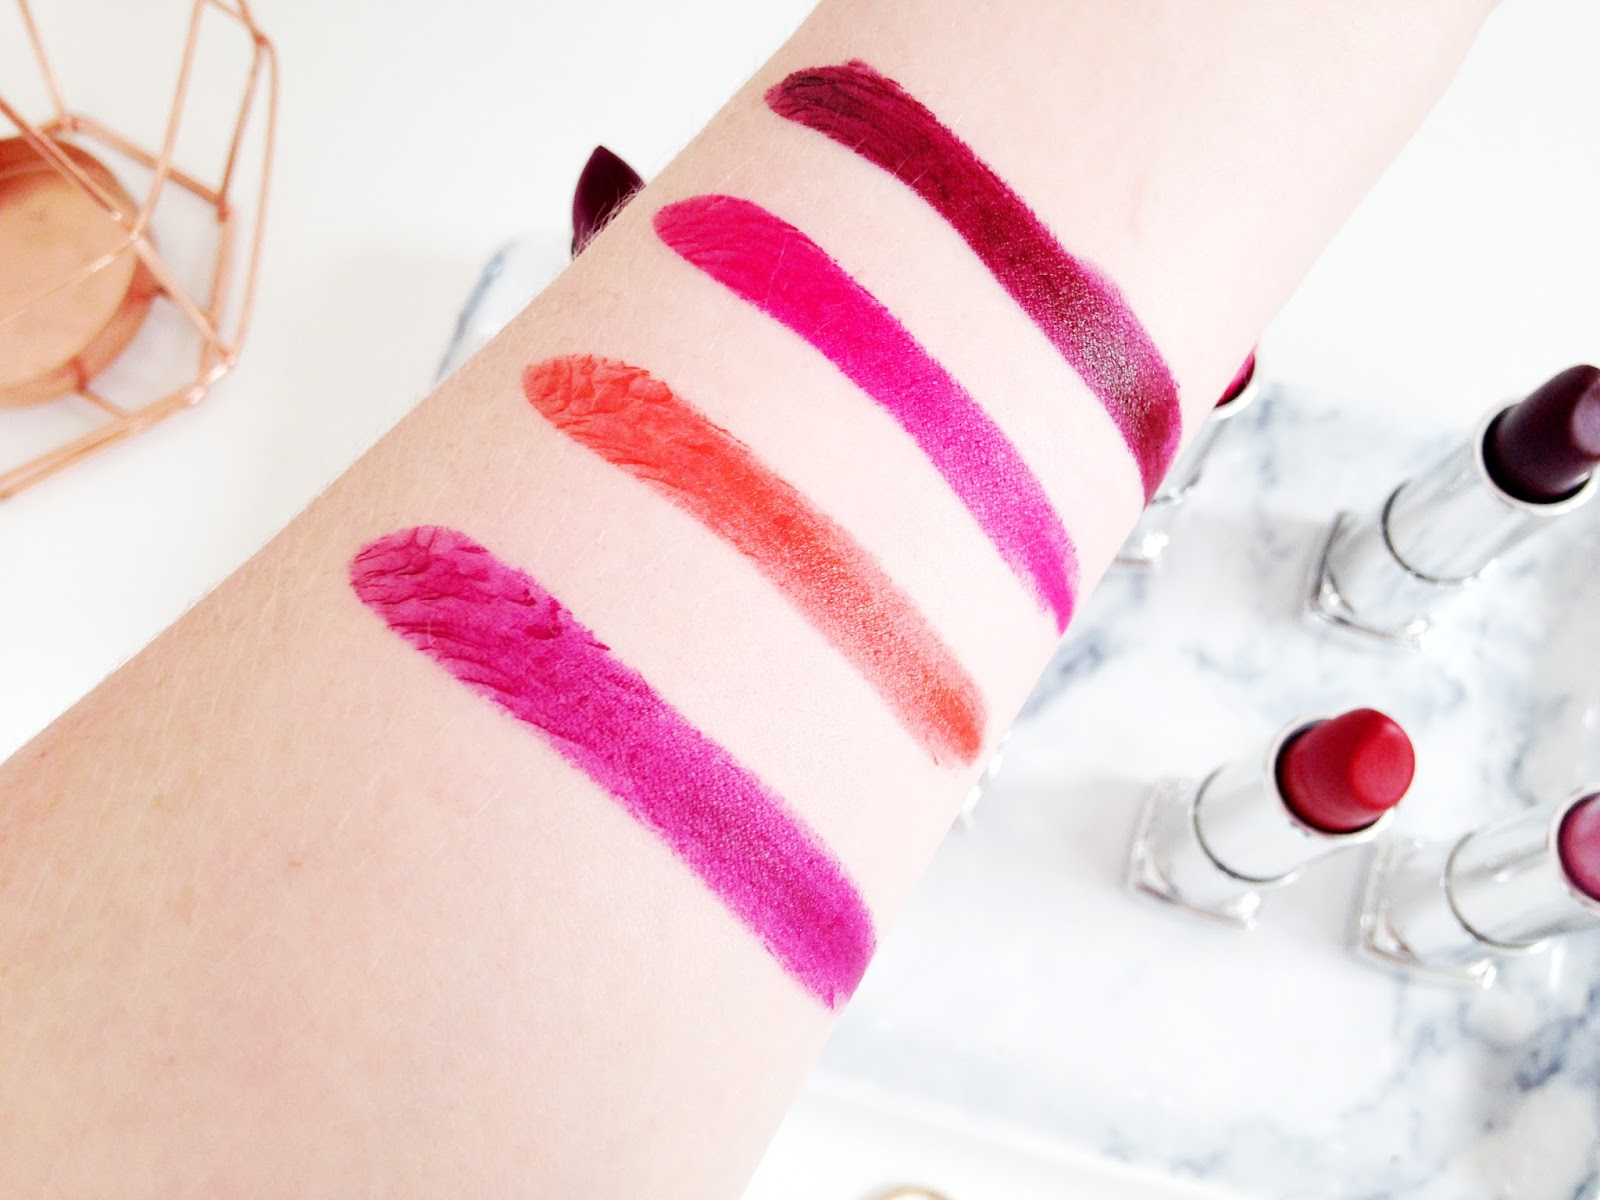 Maybelline Loaded Bolds Lipstick Swatches